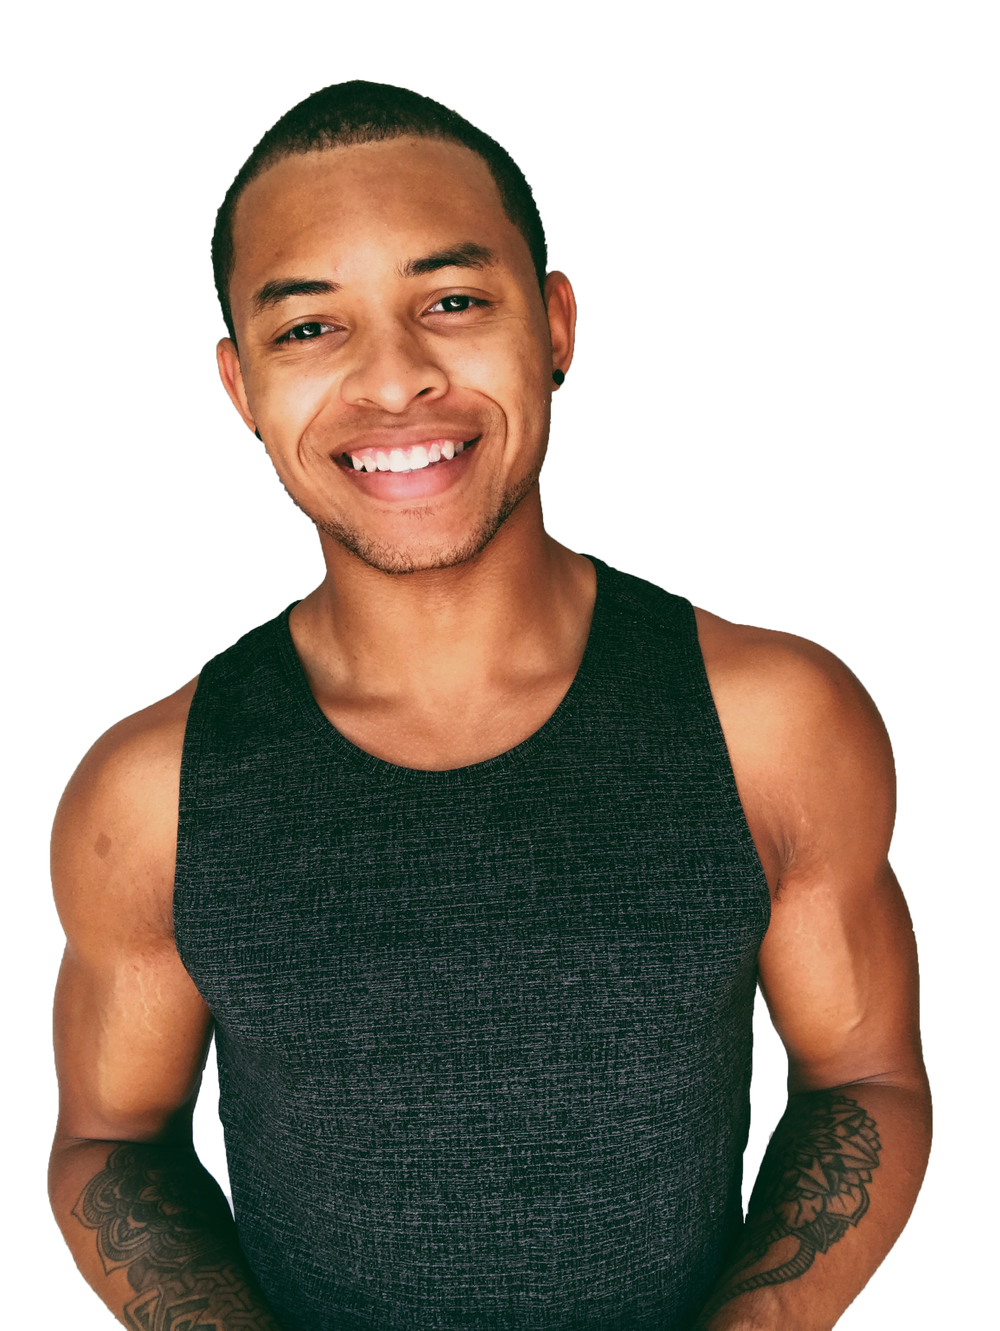 DeAndre Sinette  · RYT and creator of   Yoga With DeAndre